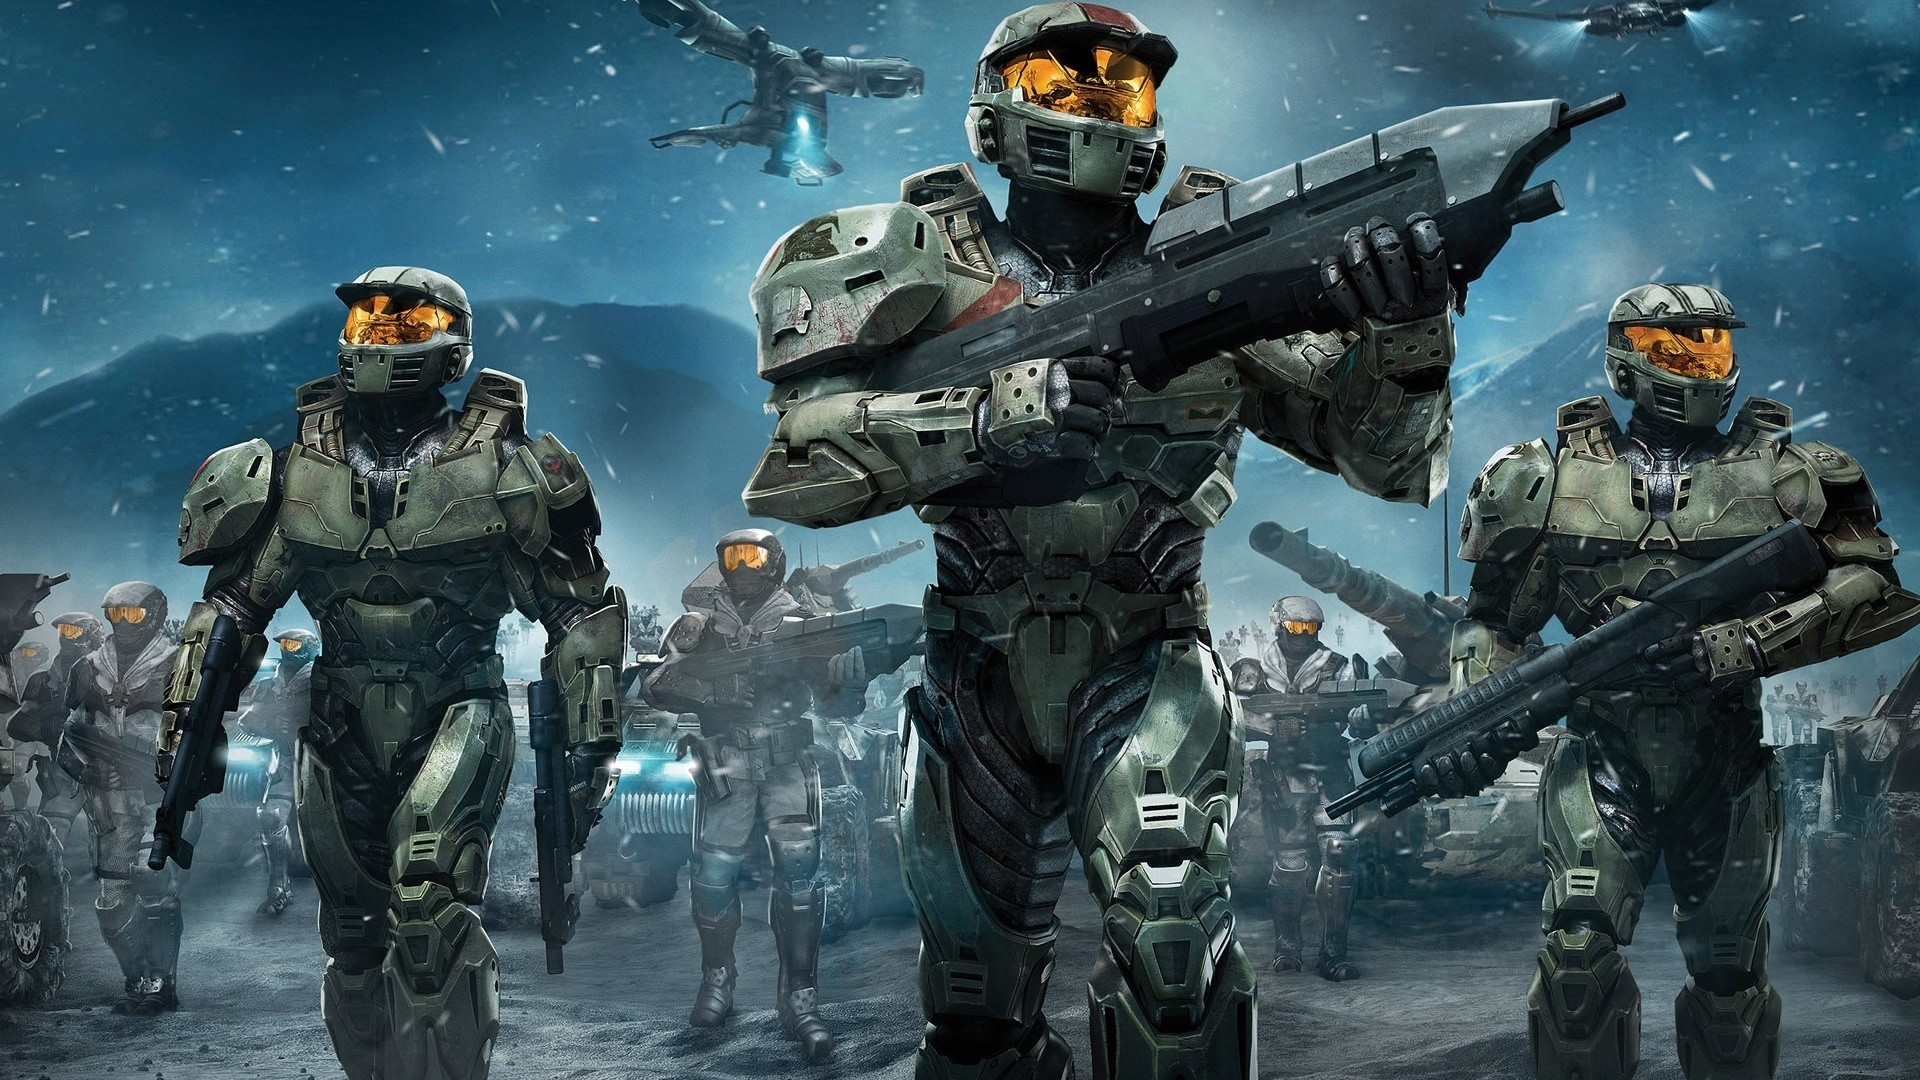 Halo Wars Spartans. How to set wallpaper on your desktop? Click  the download link from above and set the wallpaper on the desktop from your  OS.